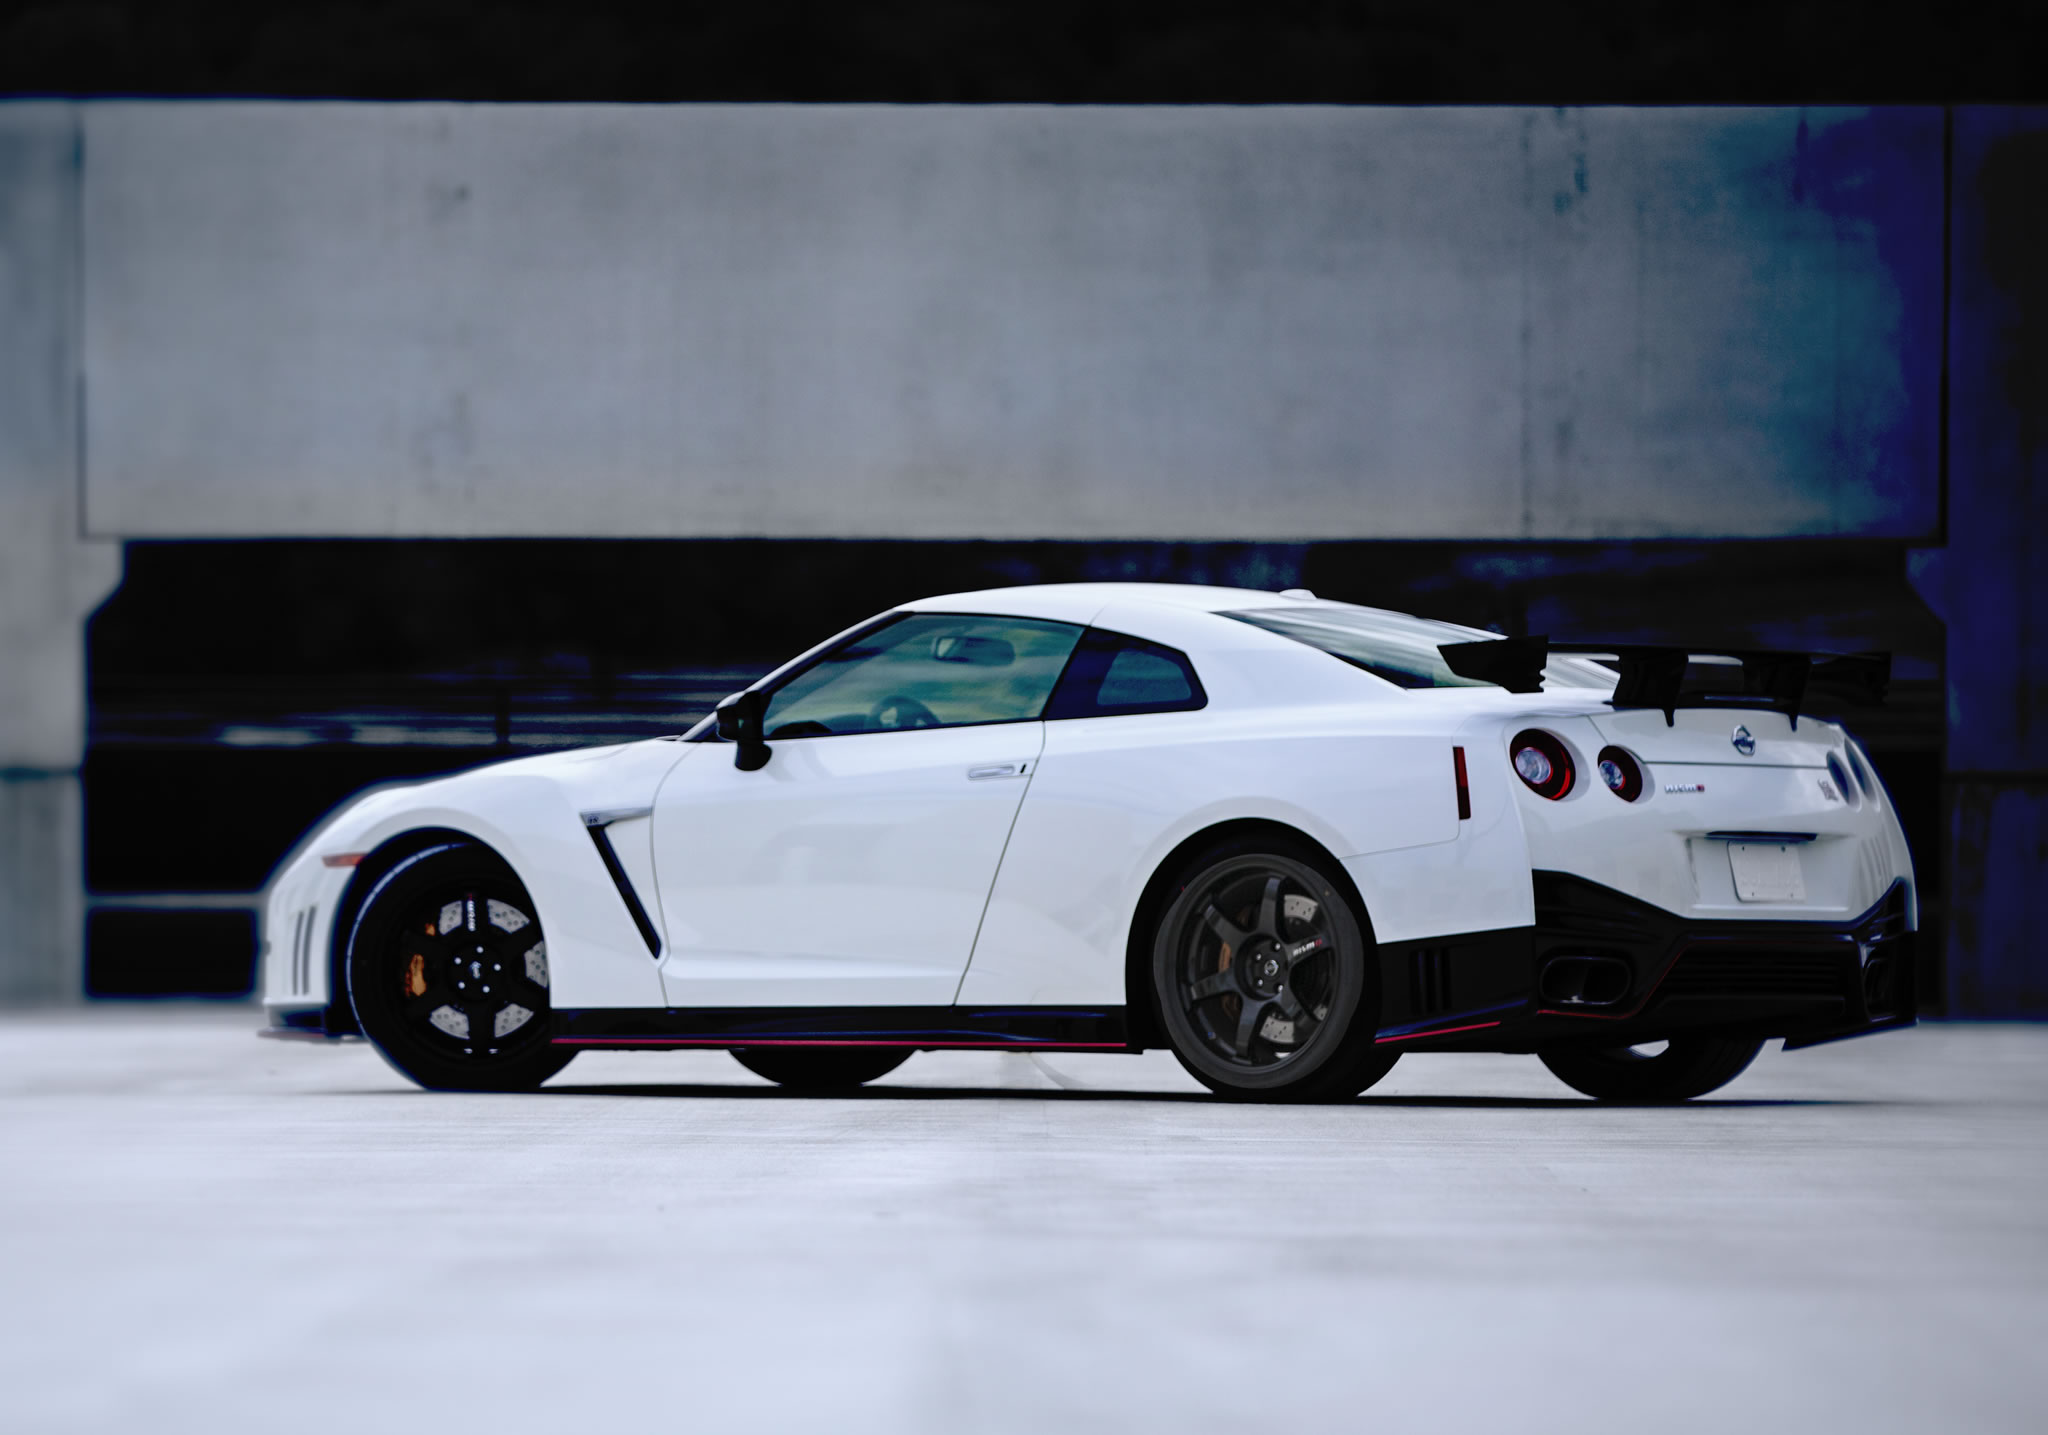 2016 nissan gt r nismo rear photo pearl white paint. Black Bedroom Furniture Sets. Home Design Ideas